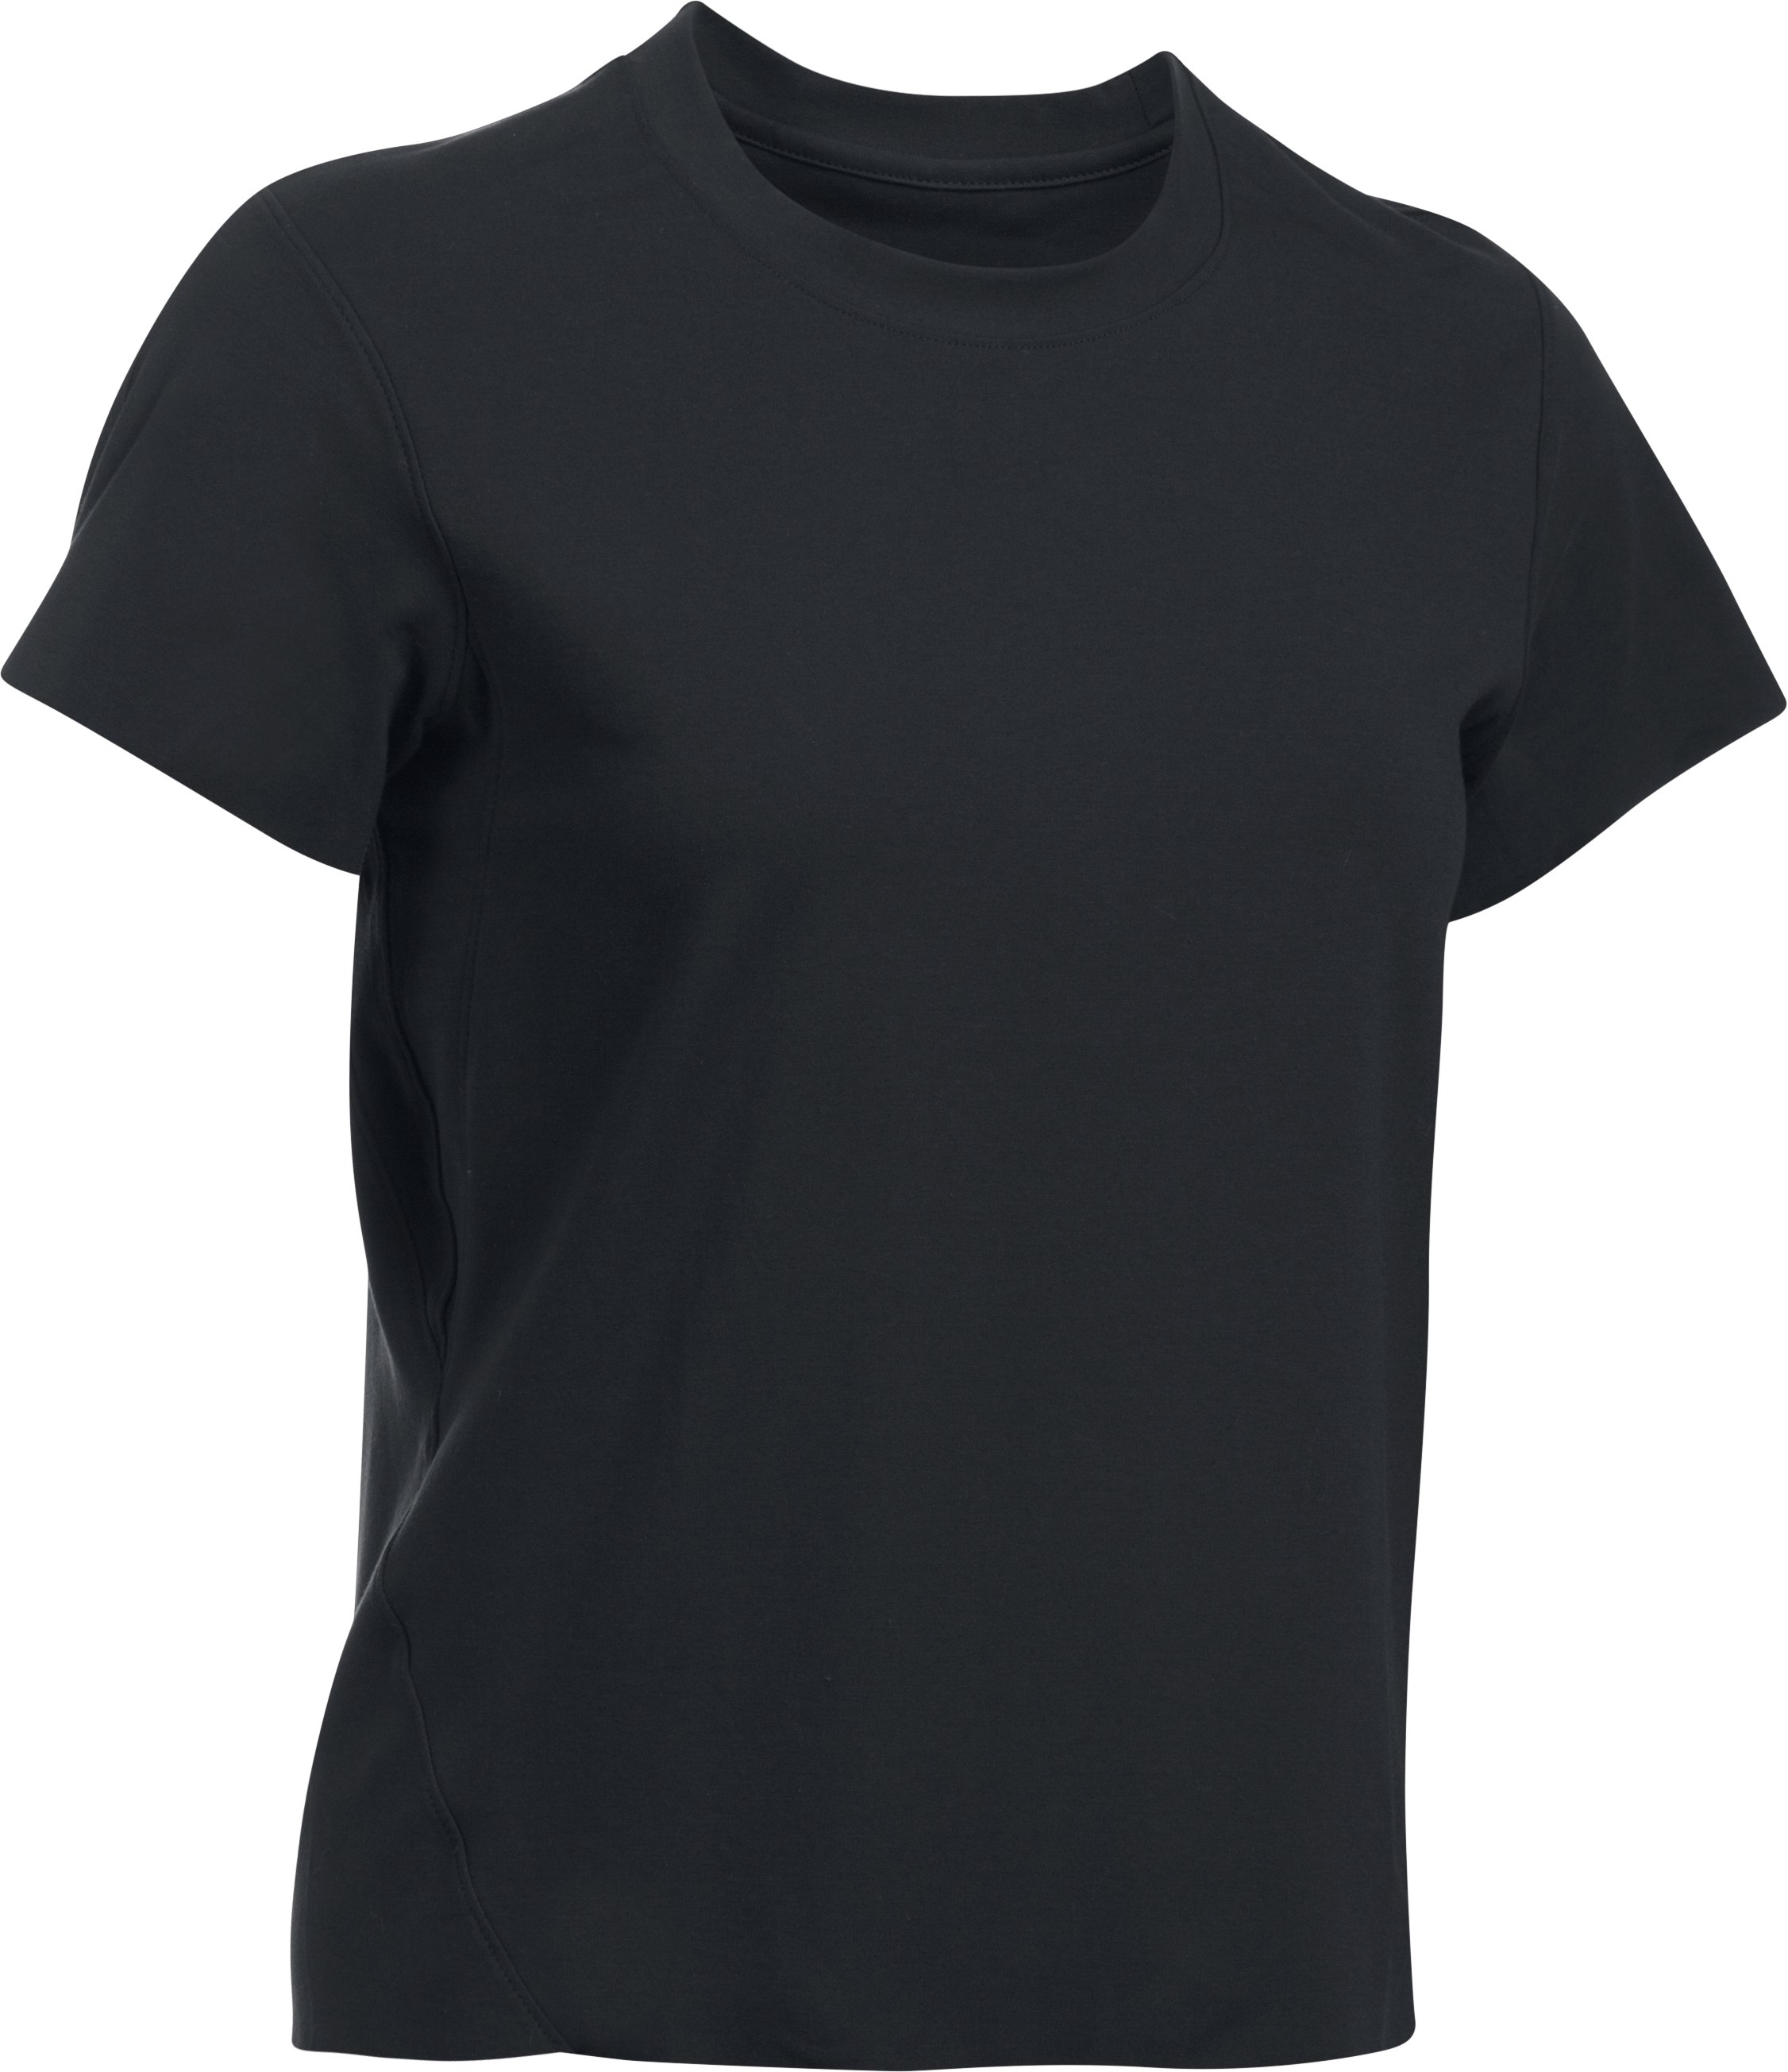 Women's Misty Graphic T-Shirt, Black ,